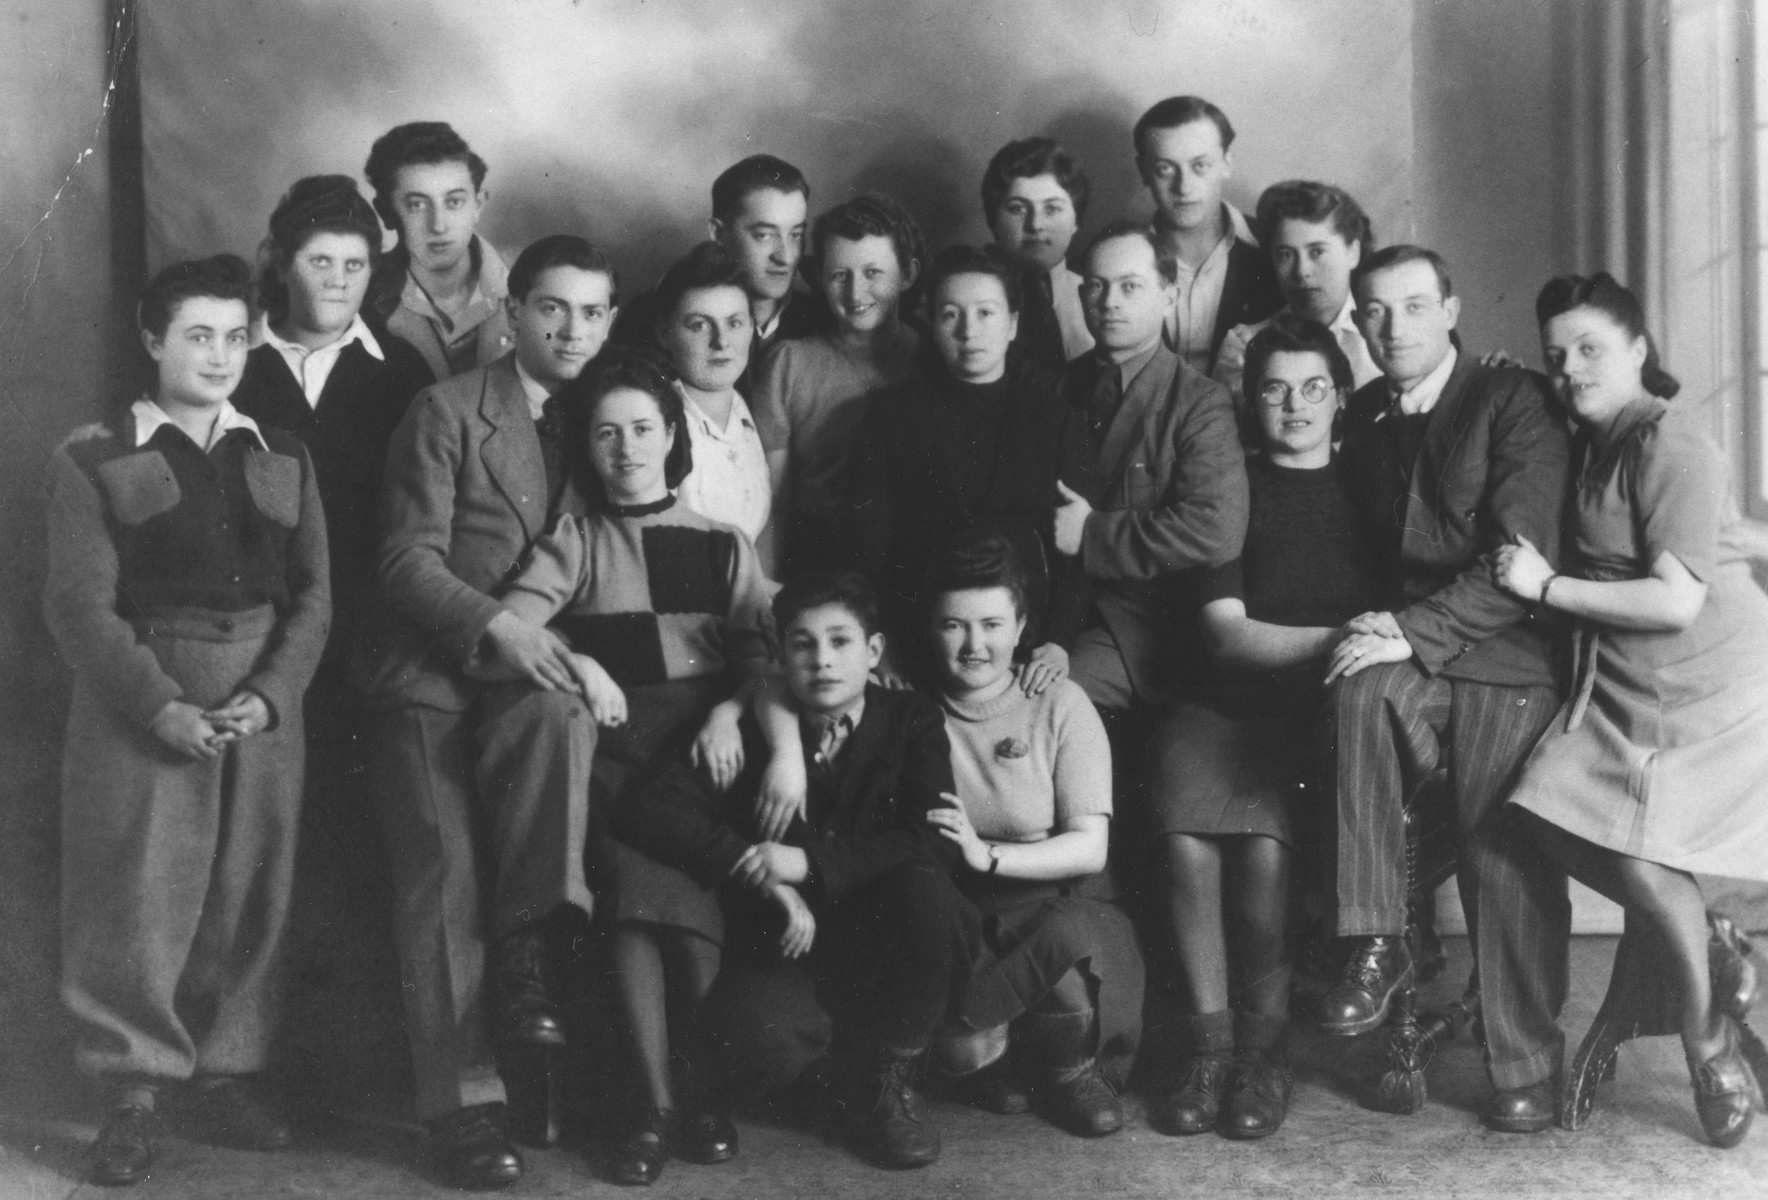 Friends and relatives from Stopnice gather in the Landsberg displaced persons camp.  Those pictured include Meir, Chana, Yechezkel and Eliezer (Lipa) Ptashnik, and the family of their maternal aunt, the Silberberg family, Helen, Alex, Sara and Luba.